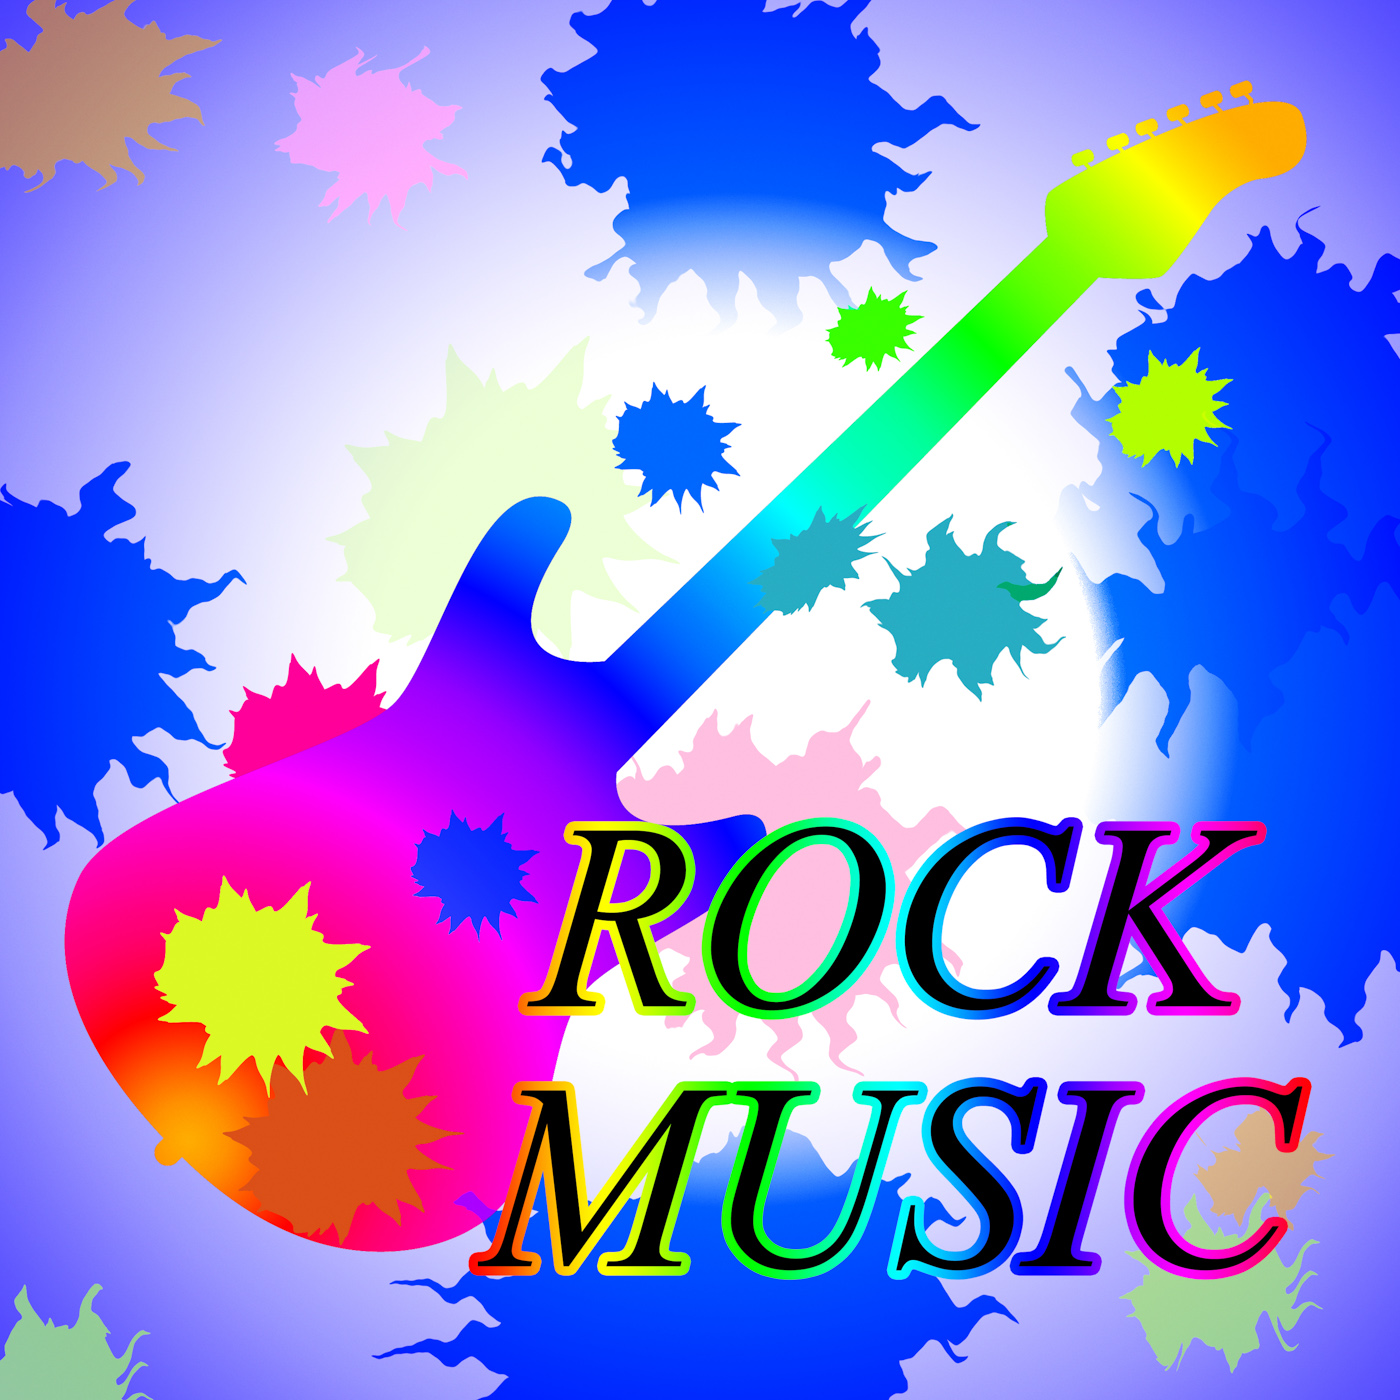 Rock music shows track soundtrack and popular photo